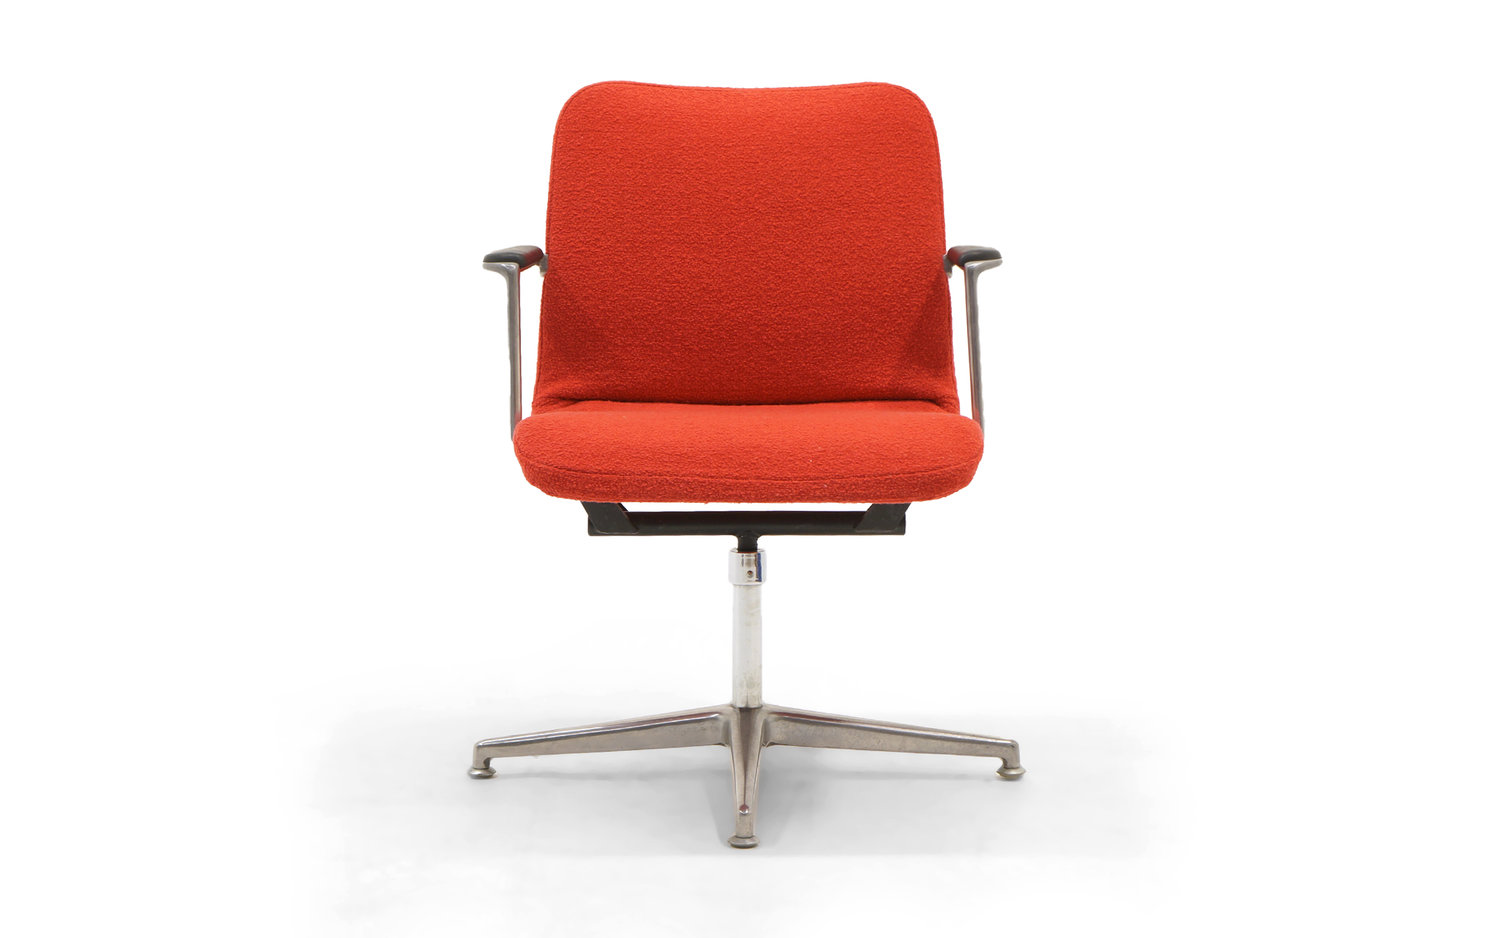 George Nelson Desk / Office Chair. Very Rare. New Red Boucle Knoll  Upholstery. — RETRO INFERNO